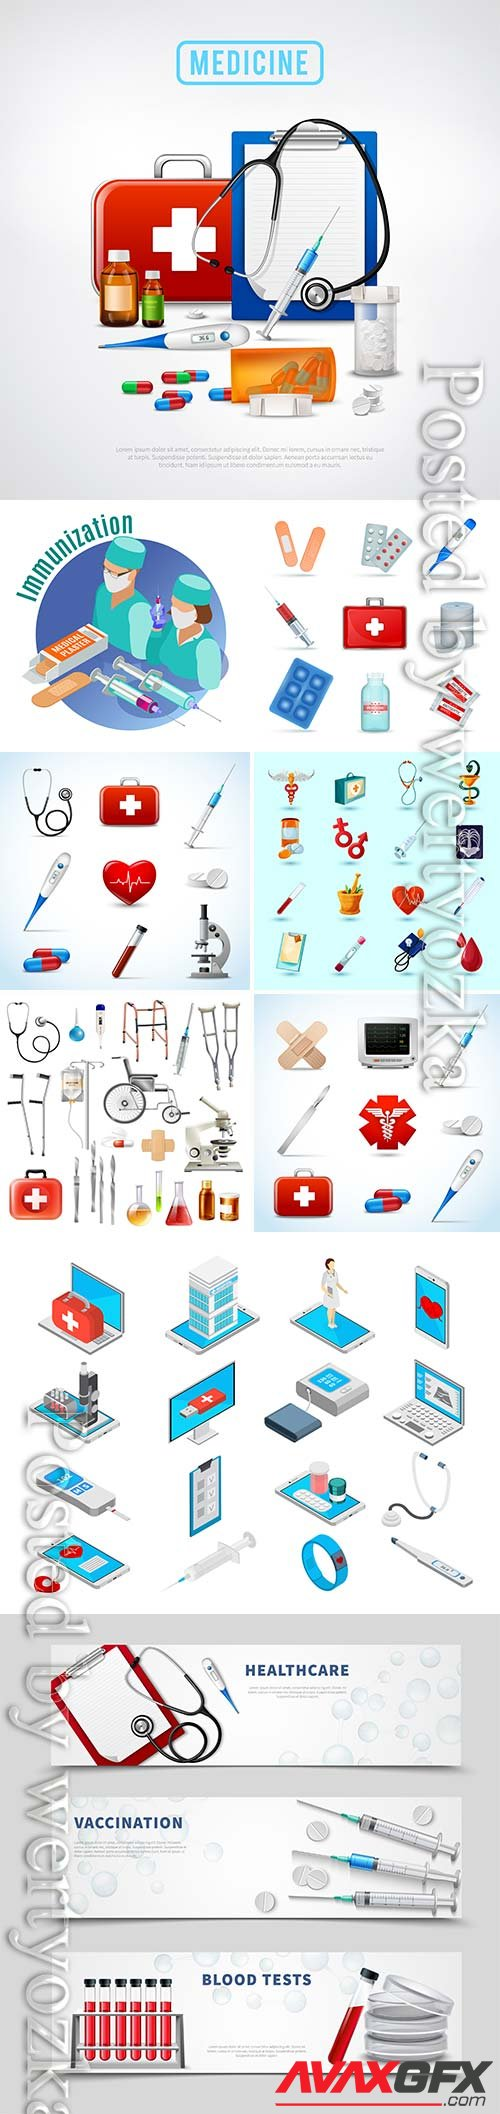 Medicine isometric concept with medical equipment symbols vector illustration